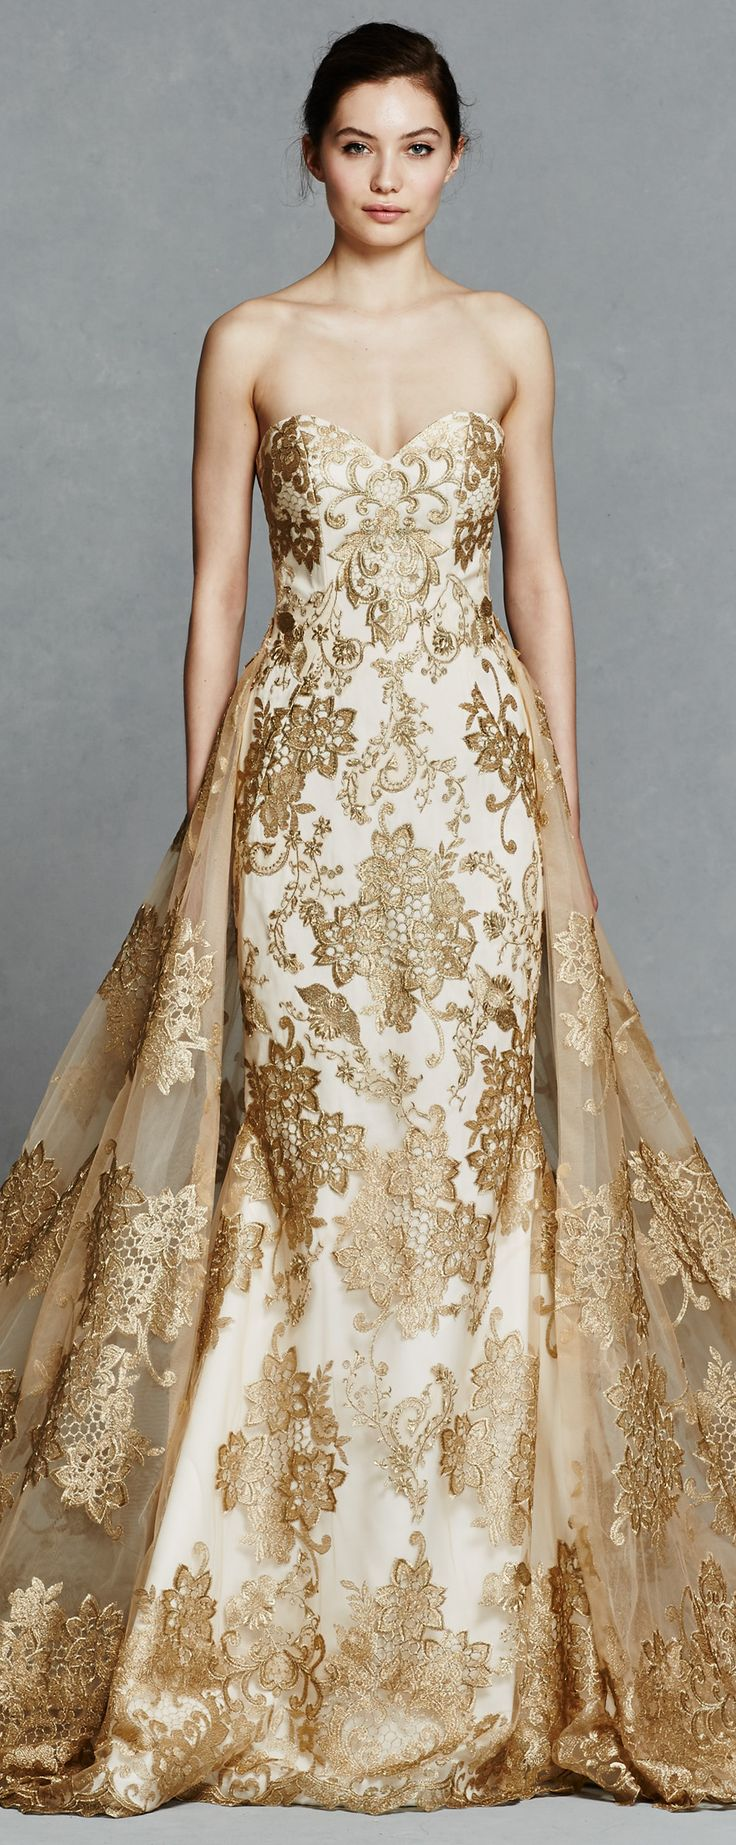 Gold Wedding Dress by Kelly Faetanini